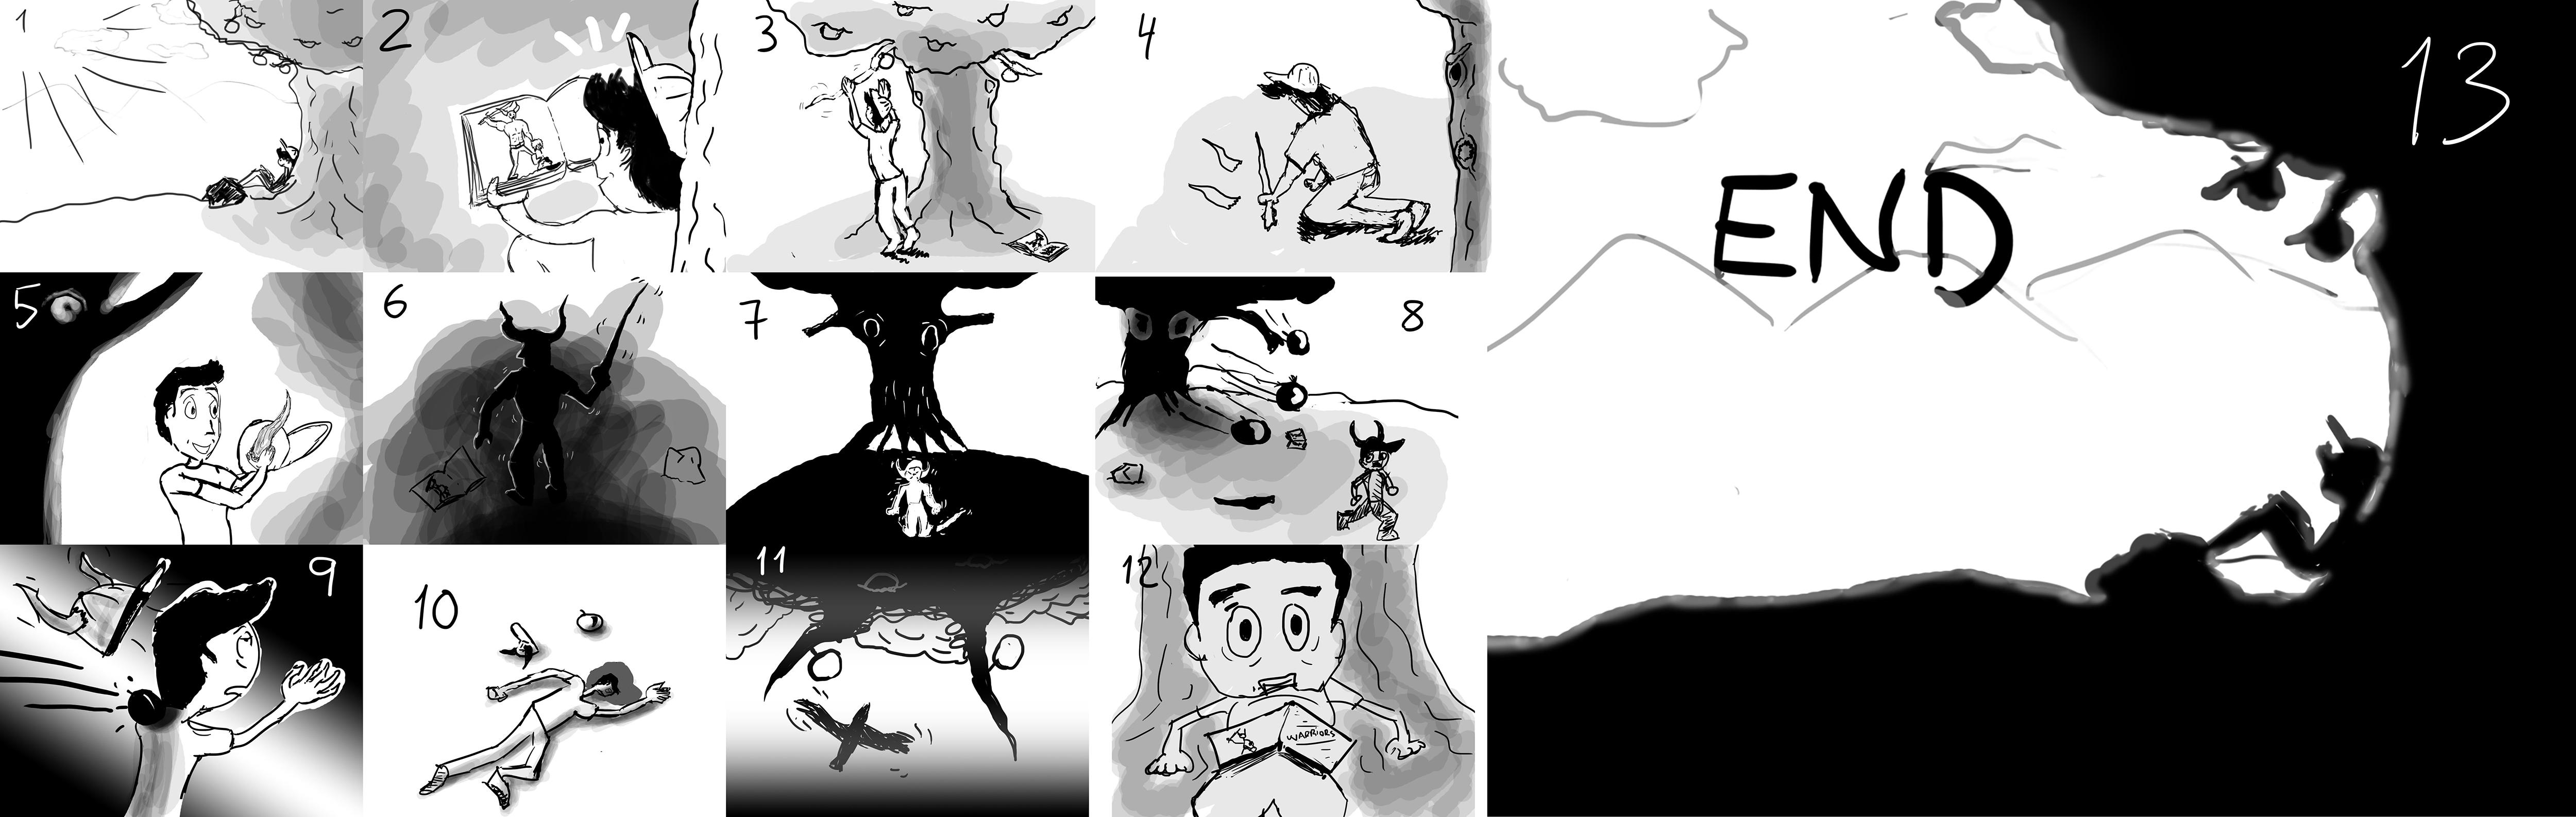 Storytelling Sequence - image 1 - student project